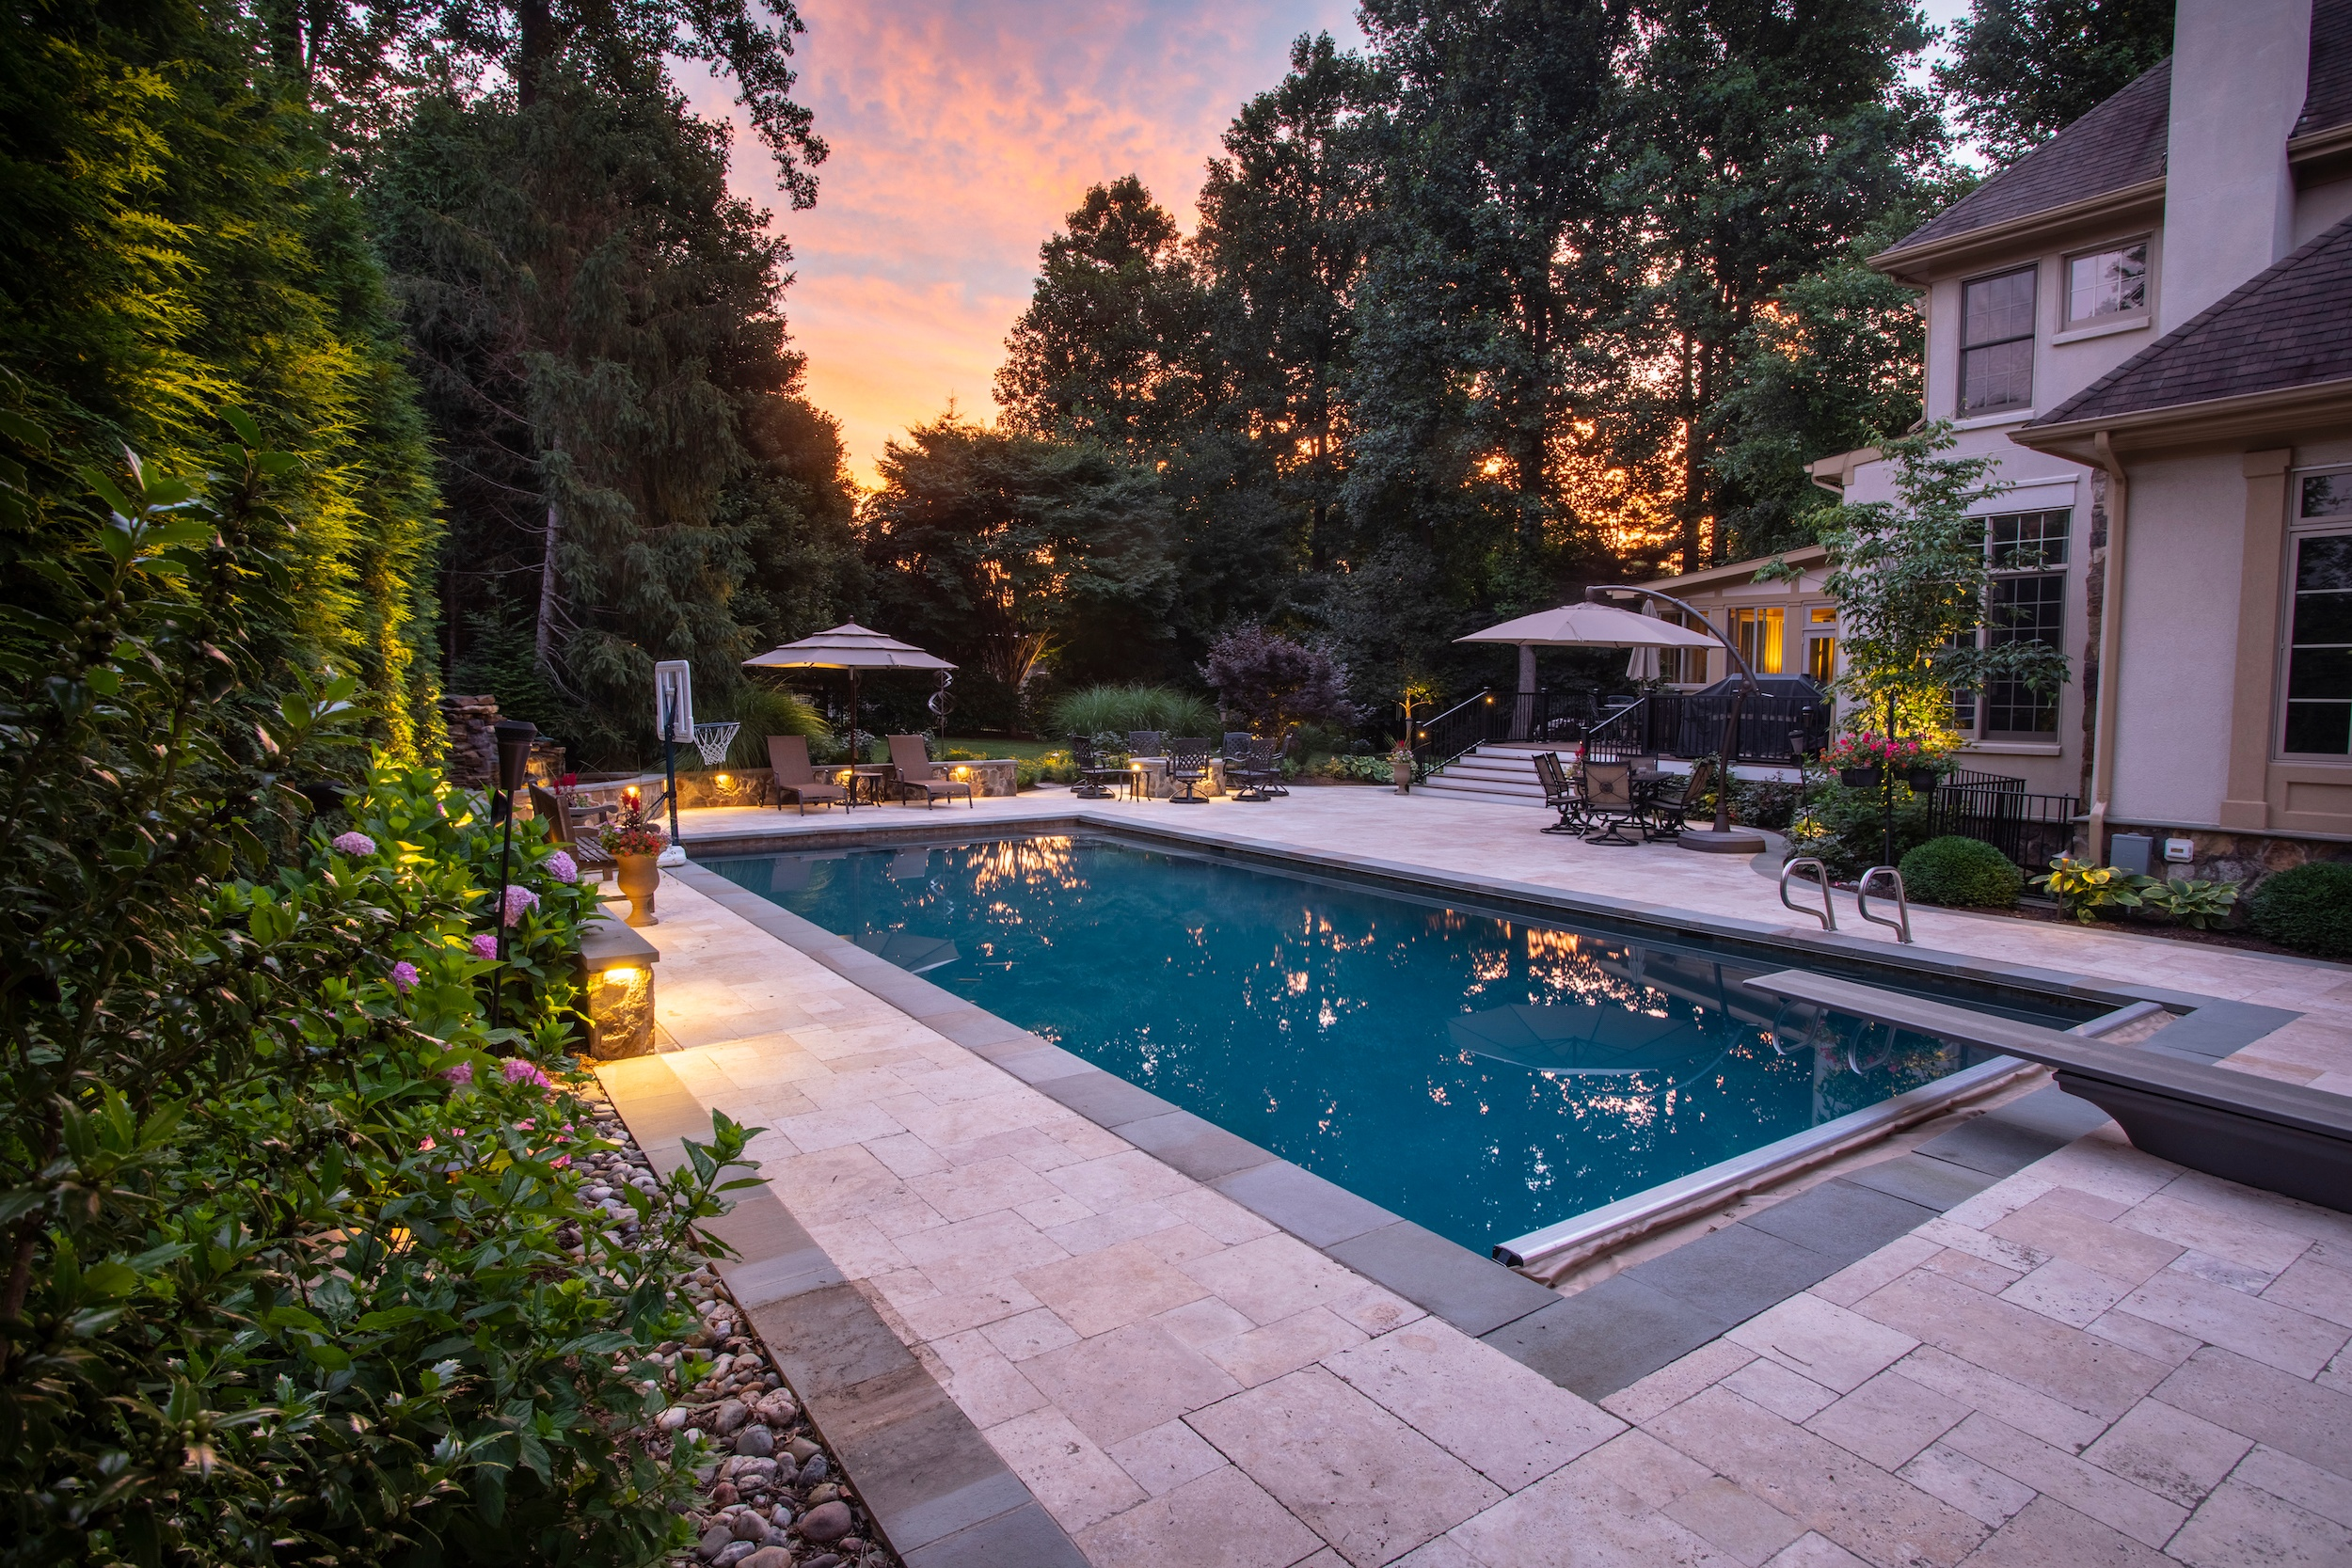 How Long Does it Take to Build a Pool: Timeline from Design to Completion in 6 Steps